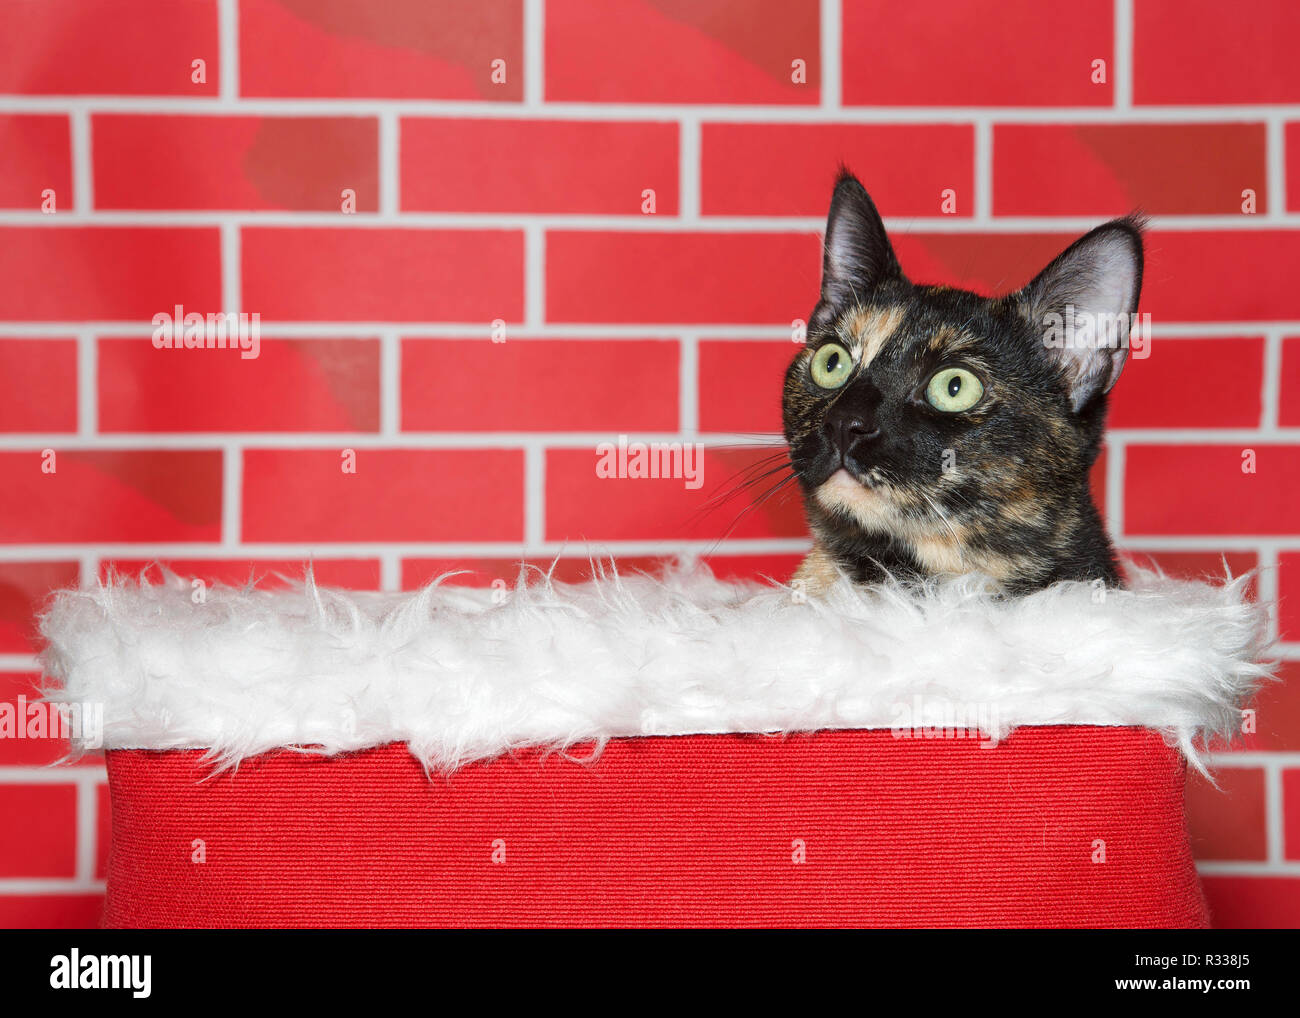 Portrait of an adorable tortie torbie tabby kitten sitting in a white fur lined red basket, looking up to viewers left. Bright red brick background. F Stock Photo